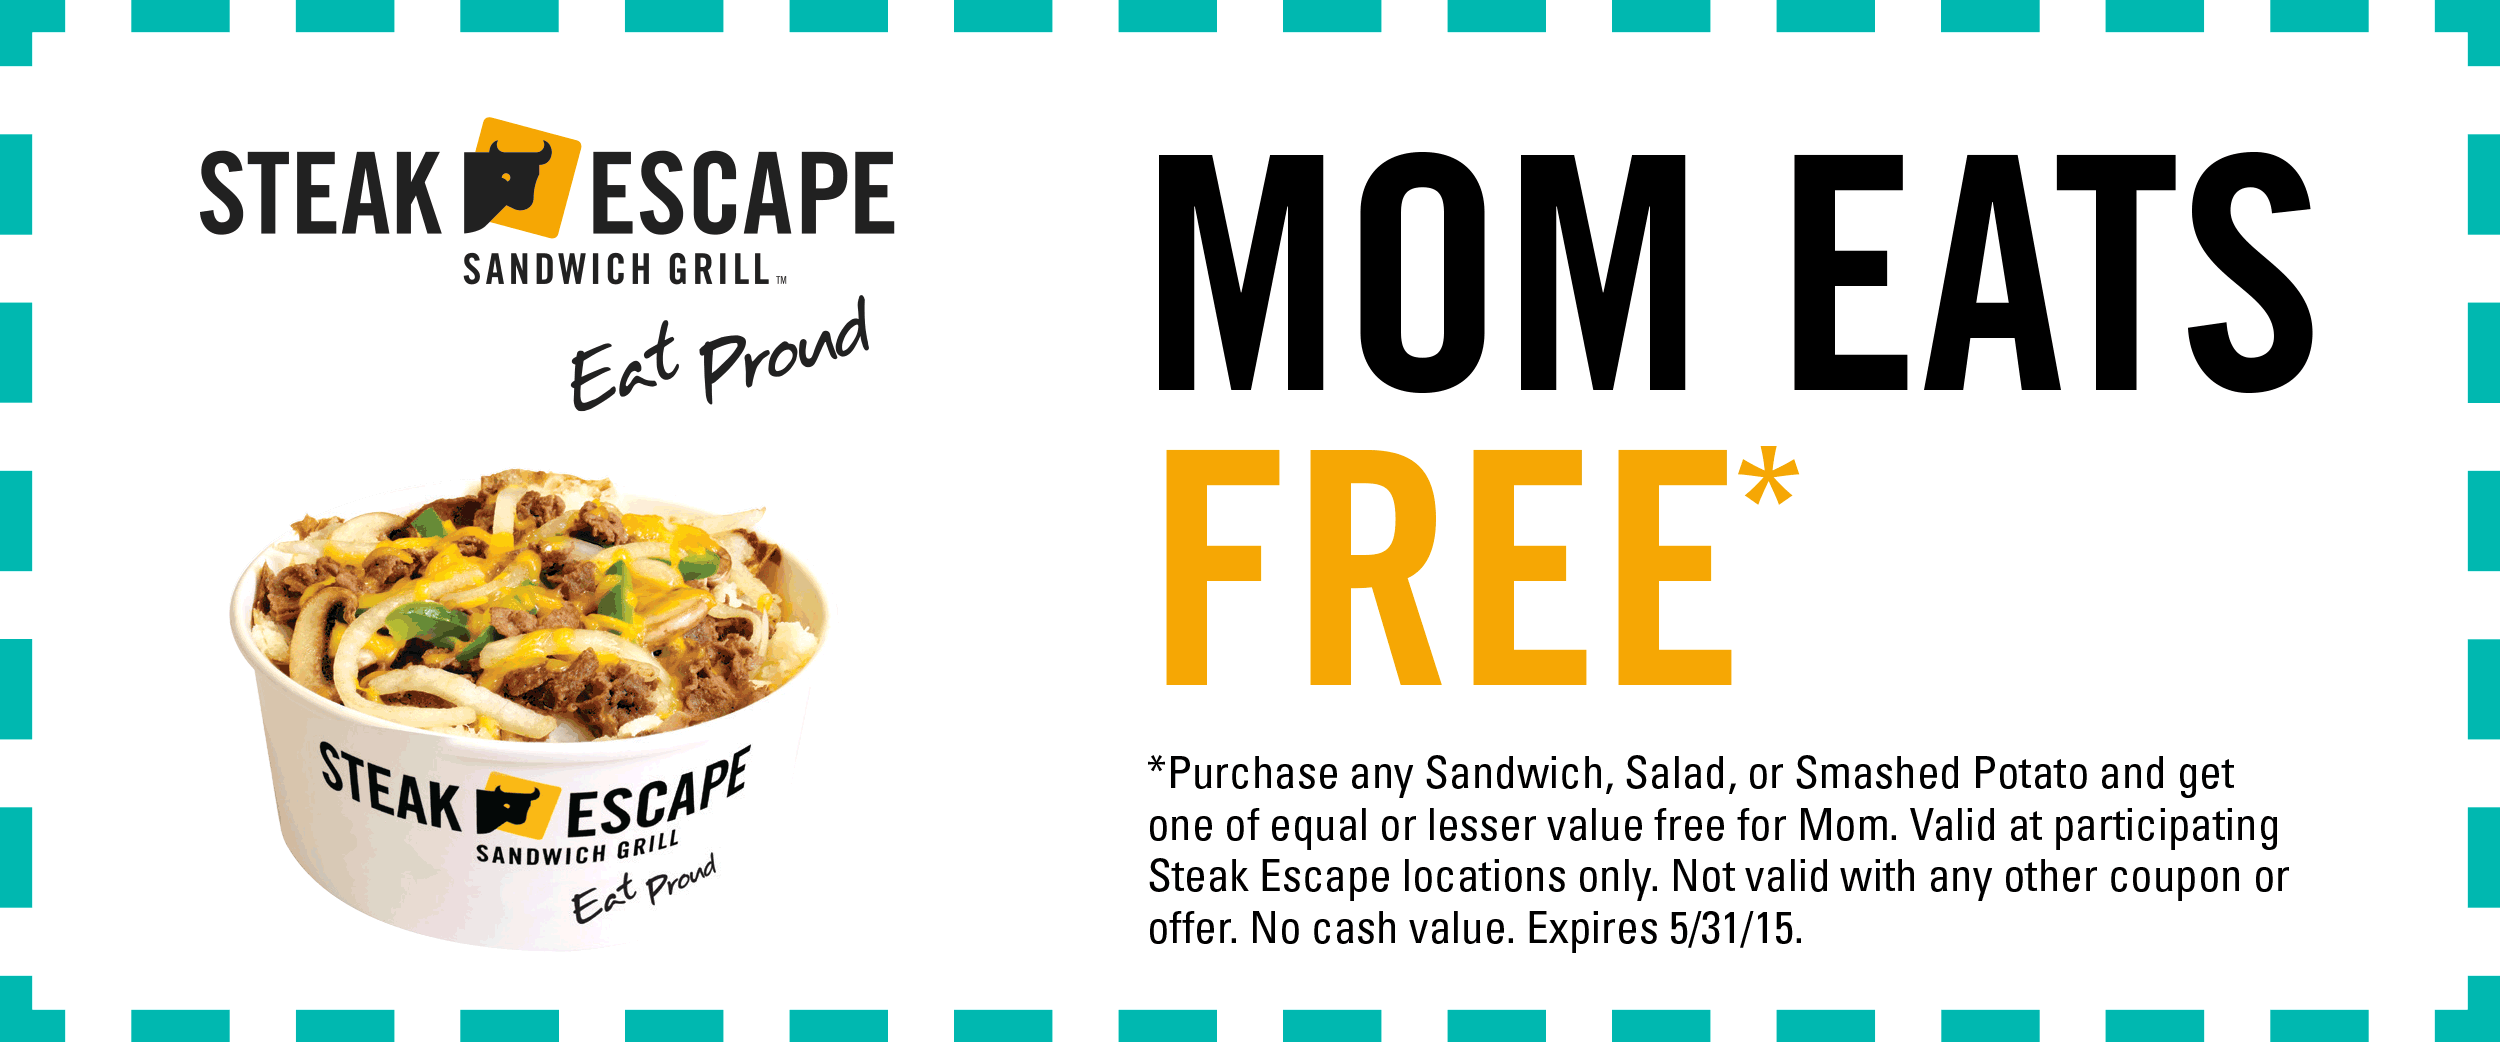 Steak Escape Coupon June 2017 Second sandwich or salad free for Mom all month at Steak Escape